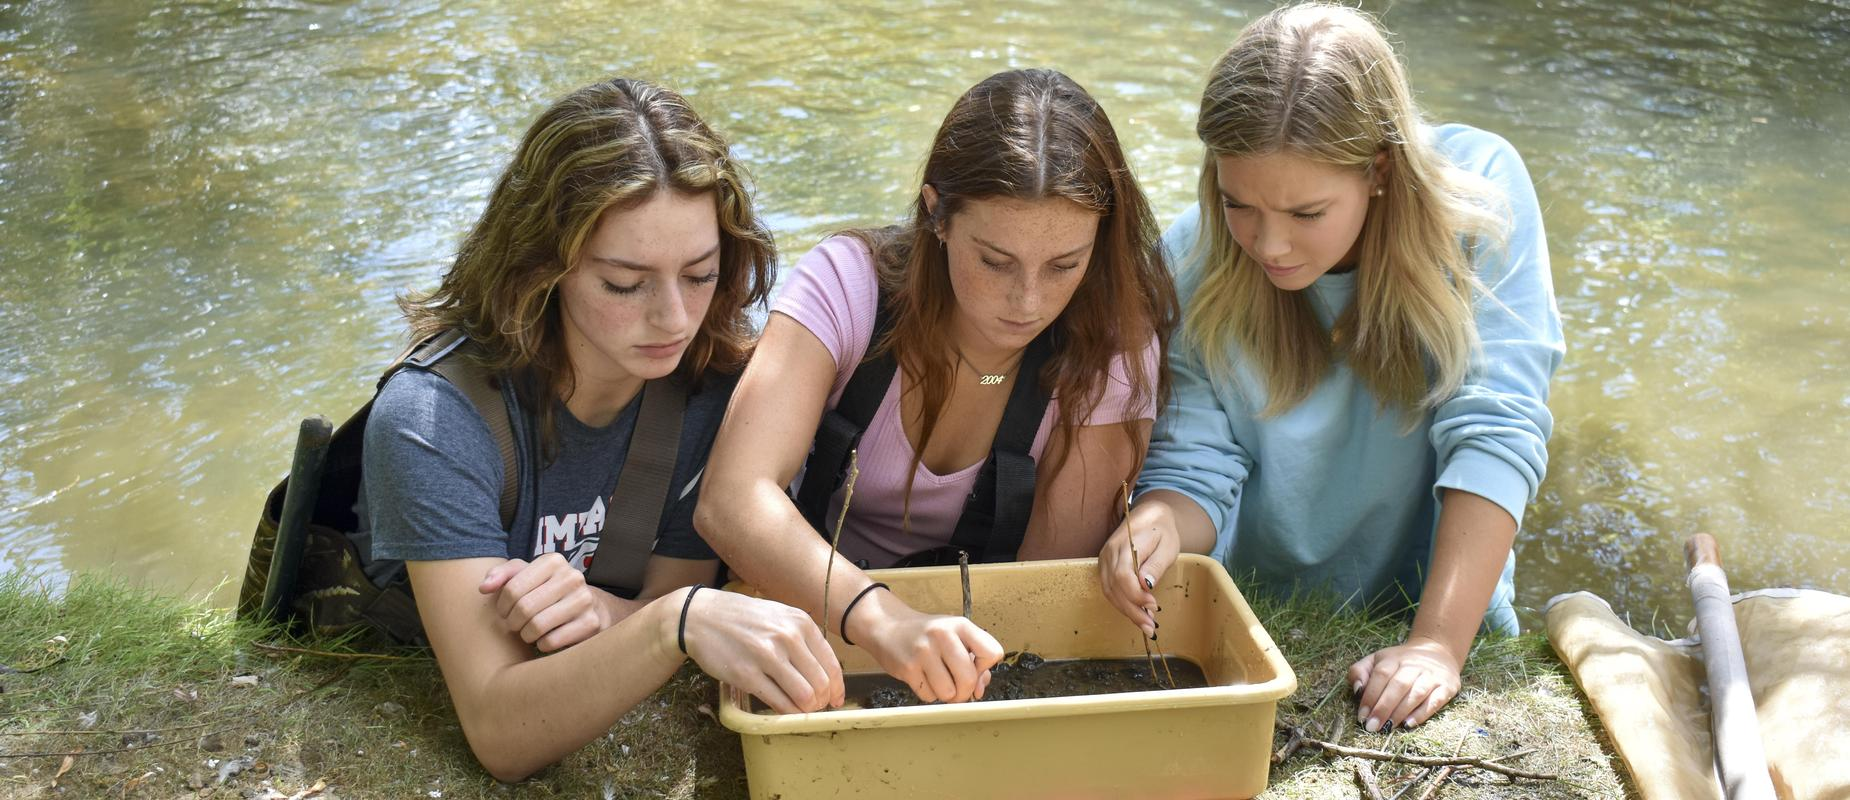 three girls study bugs in creek by examining them in a tray